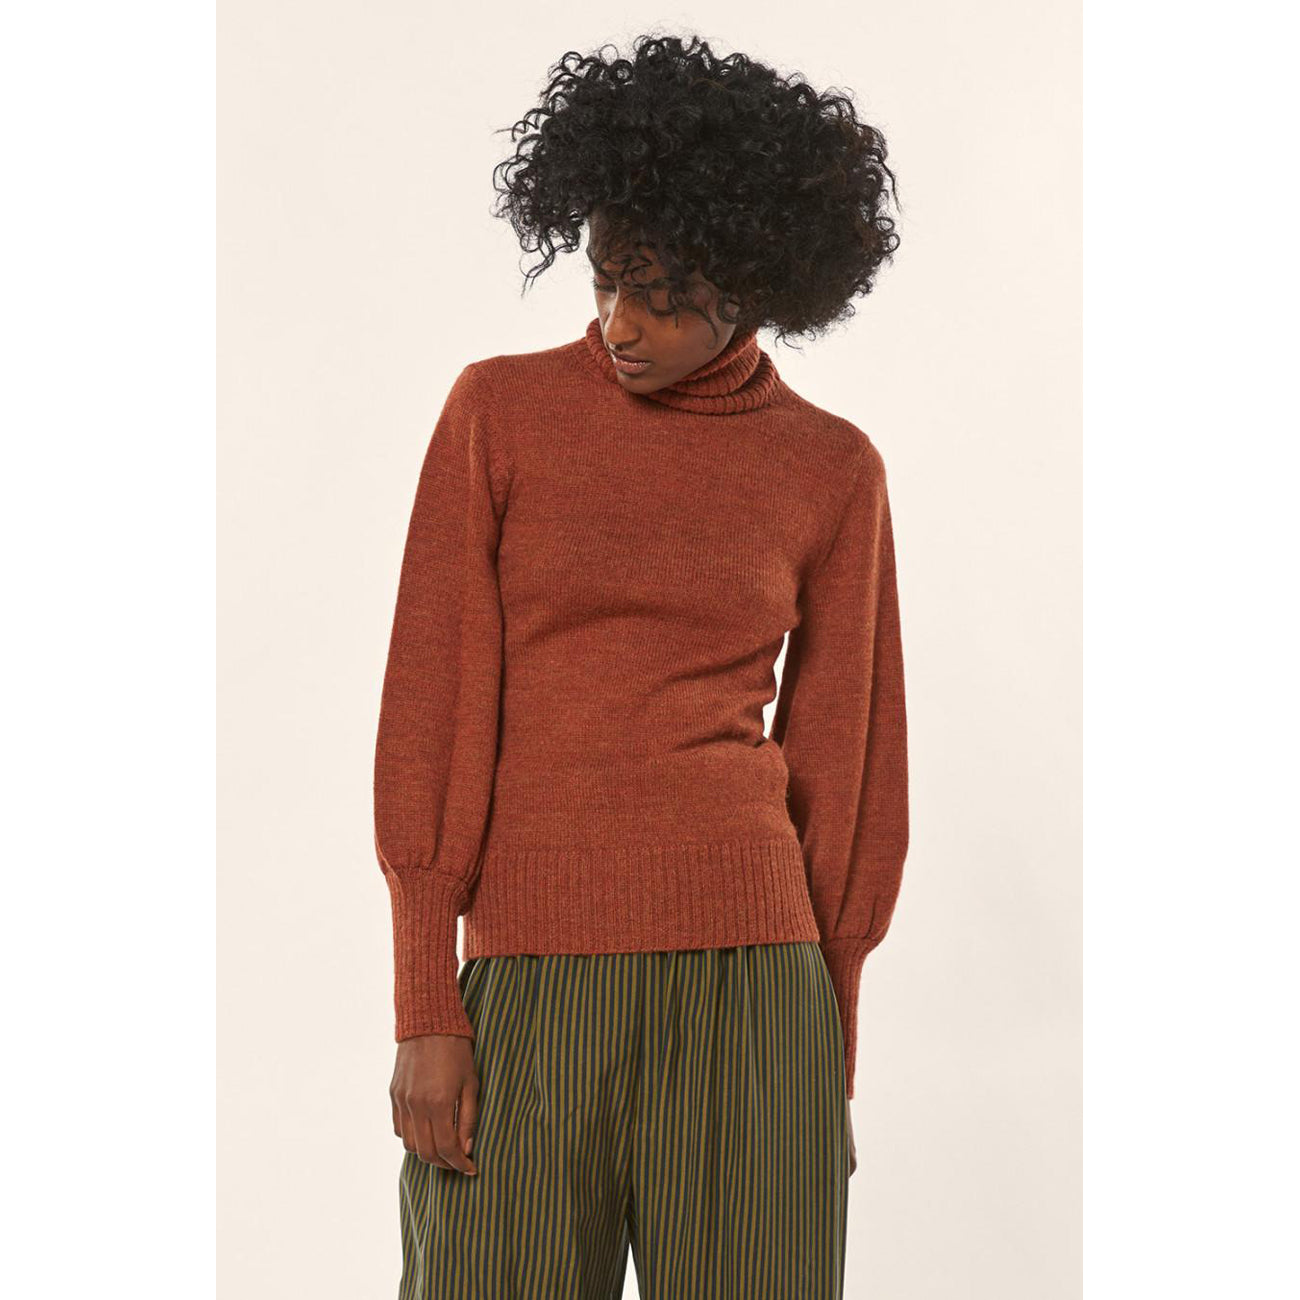 Mara Hoffman May Sweater in Rust